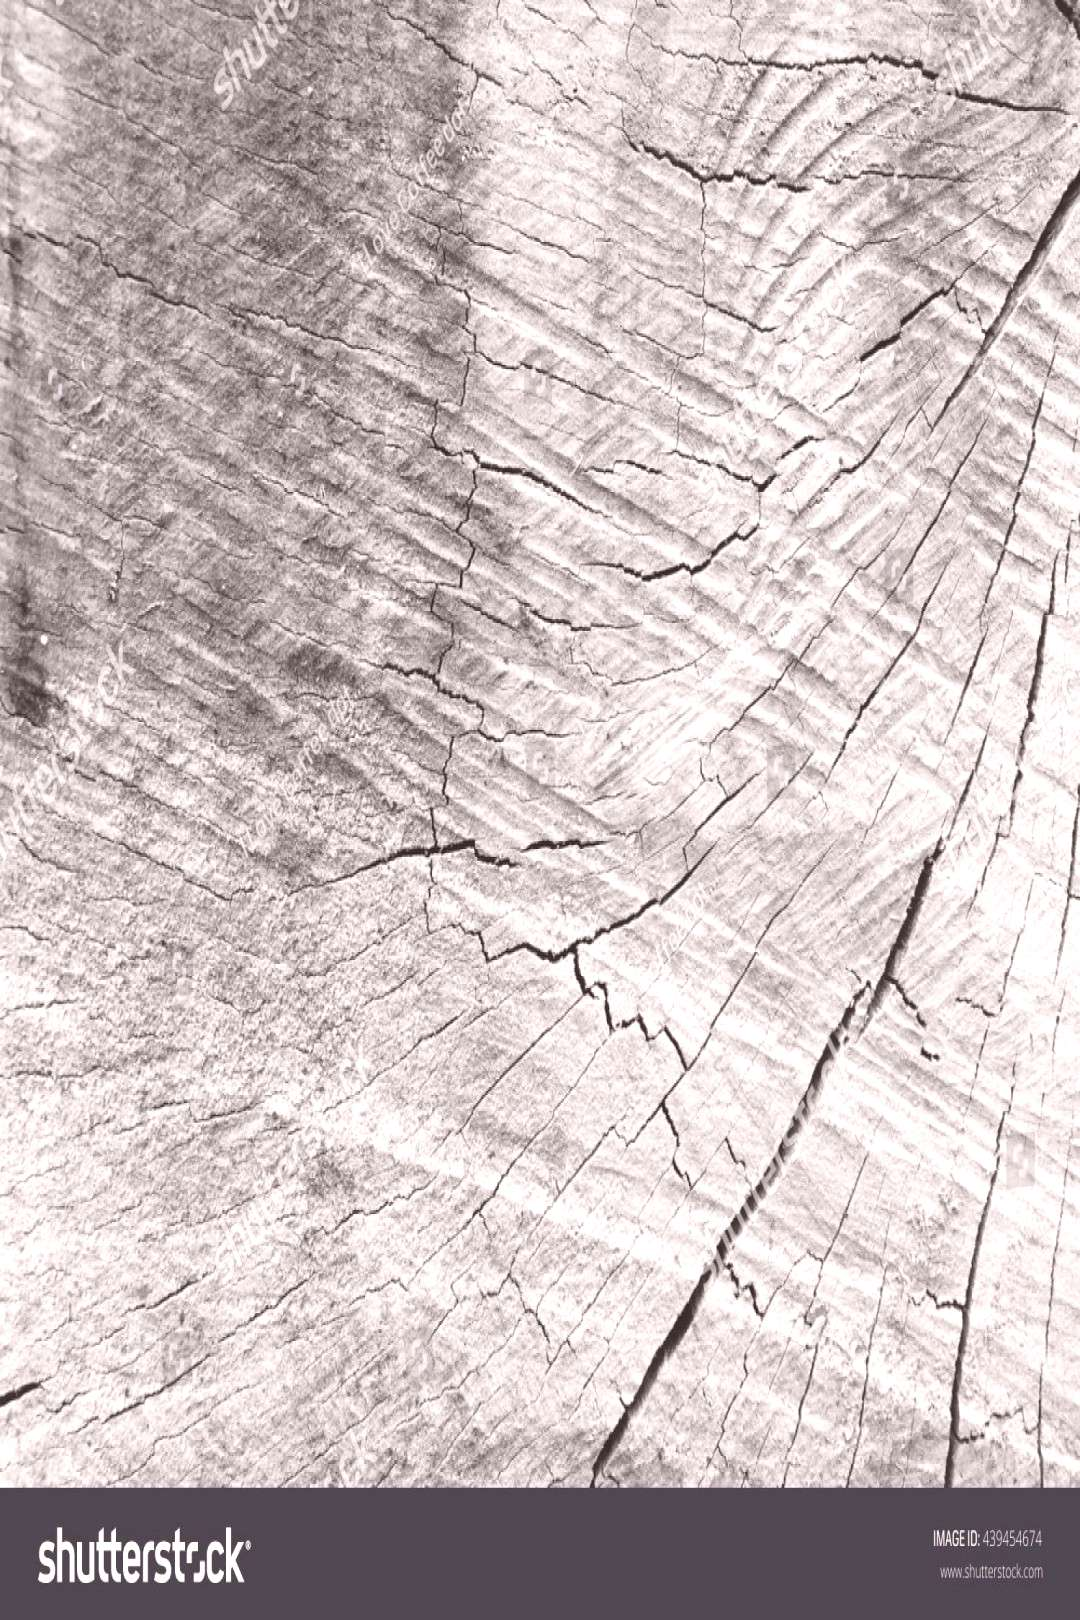 tree stump texture background with black and white style.Vintage and retro.